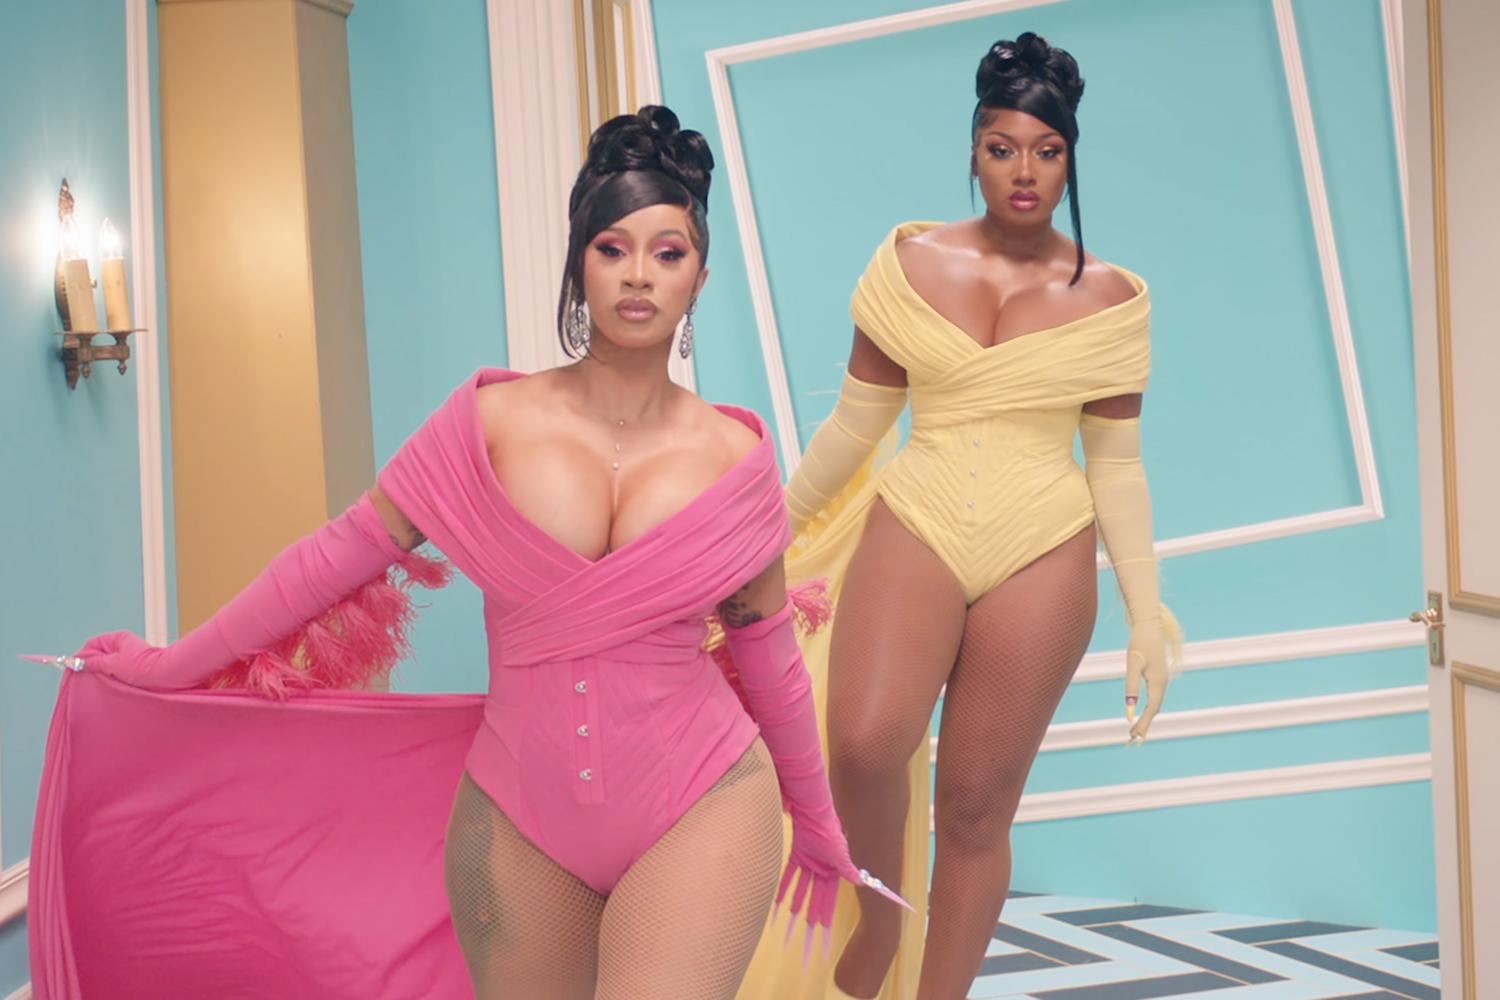 Cardi B - WAP feat. Megan Thee Stallion